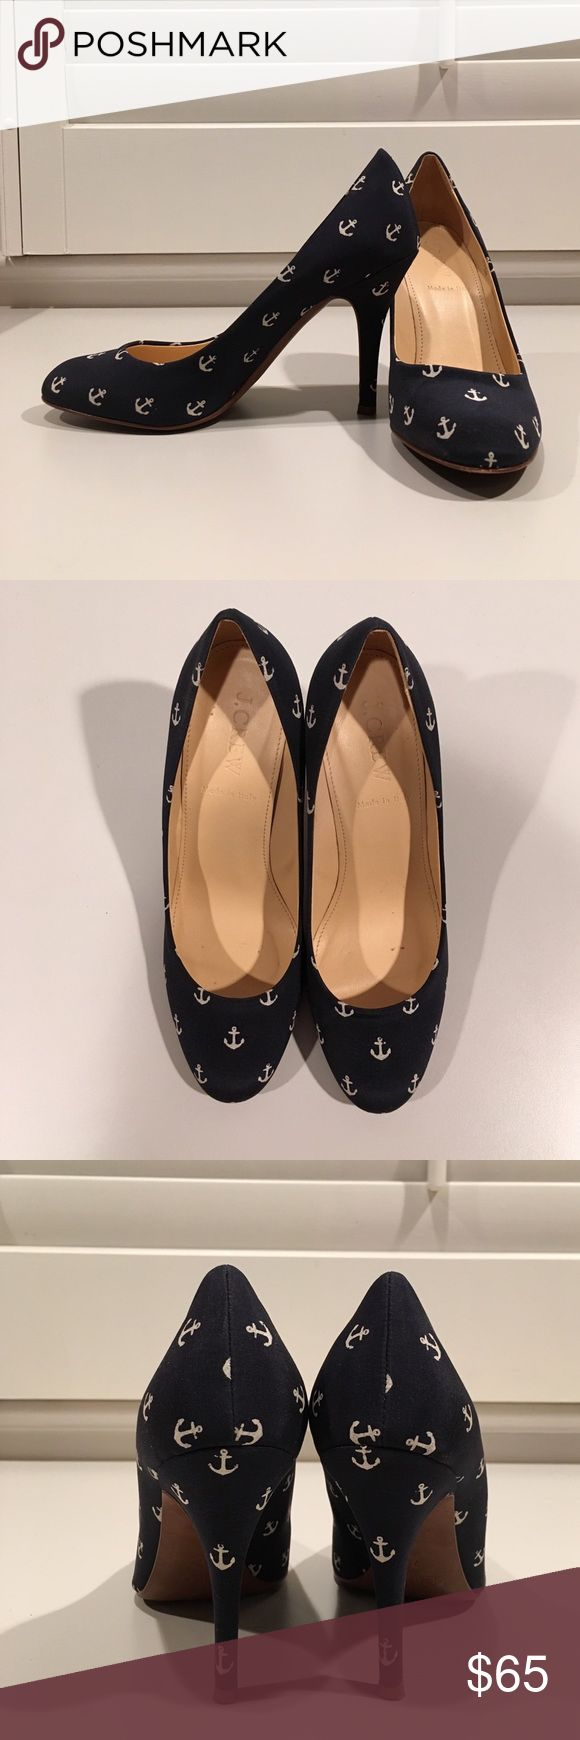 J. Crew nautical pumps Navy and white anchor print pumps. Small size 7 (fits more like 6.5). Great condition, worn once or twice. J. Crew Shoes Heels